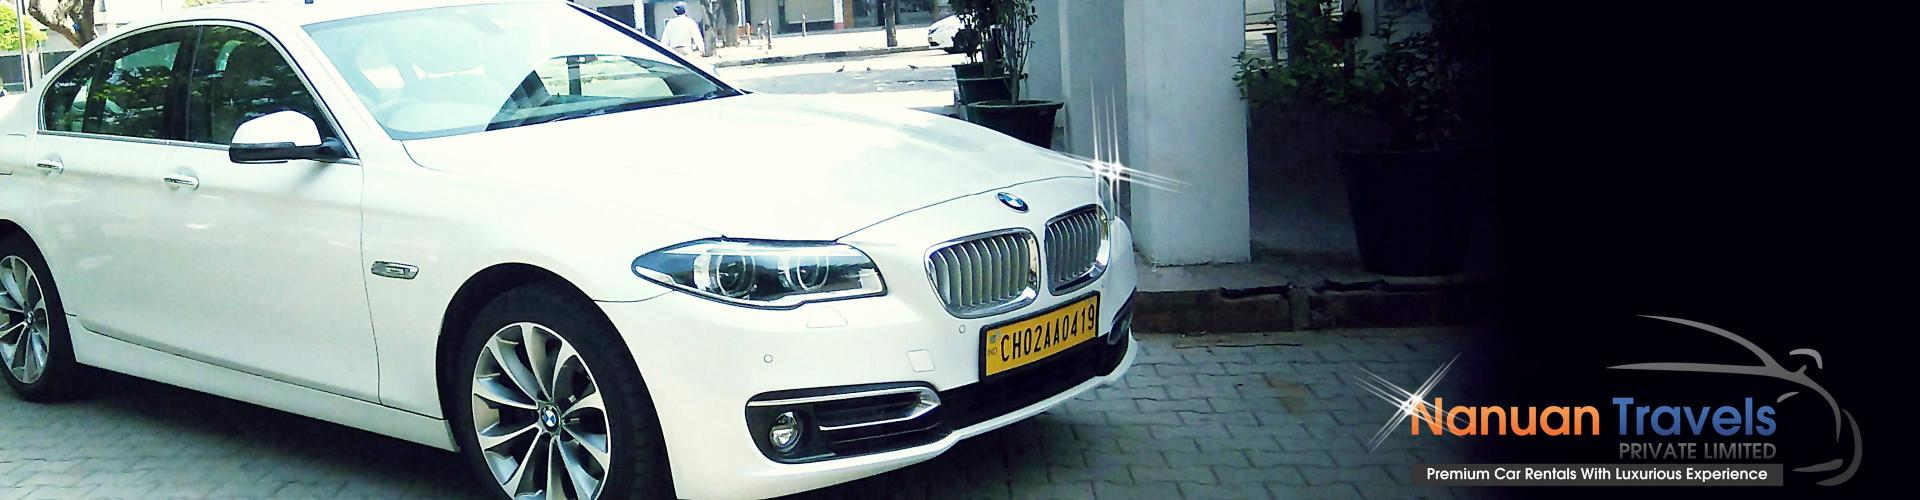 car on rent in mohali